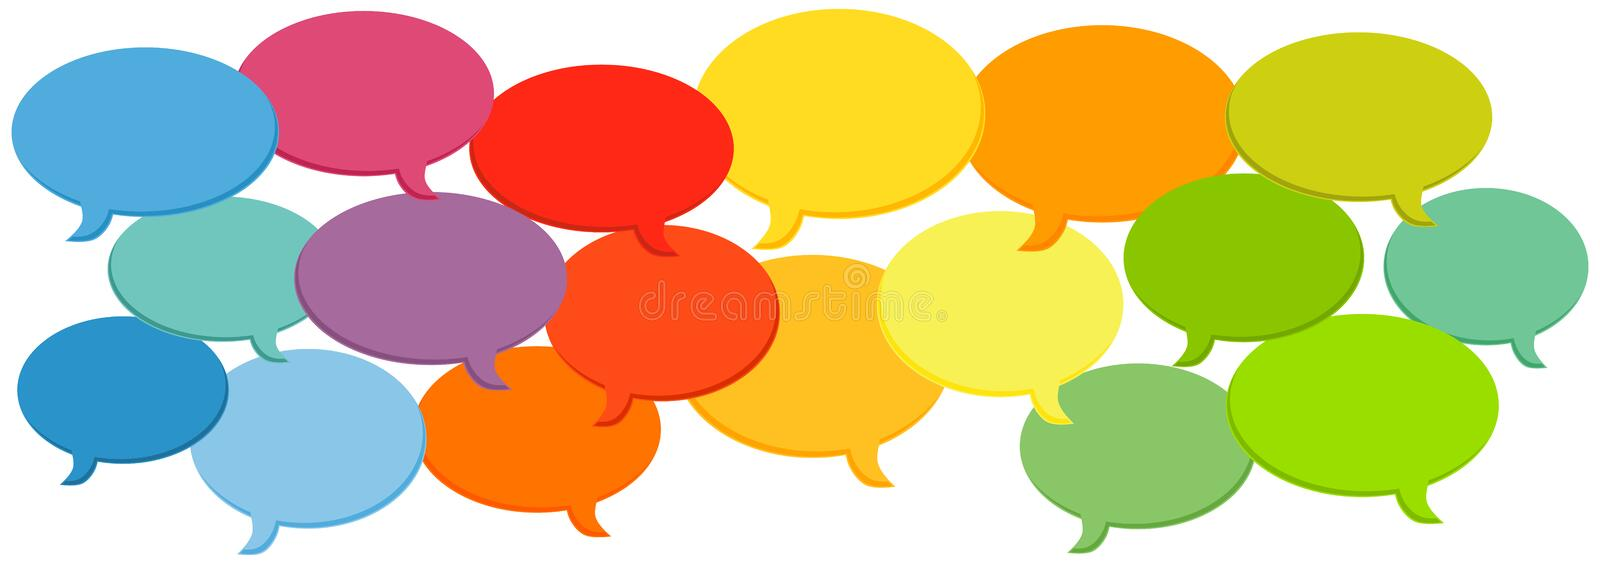 Speech bubbles cloud. Social media speech bubbles cloud background. Various colors for different media or opinions